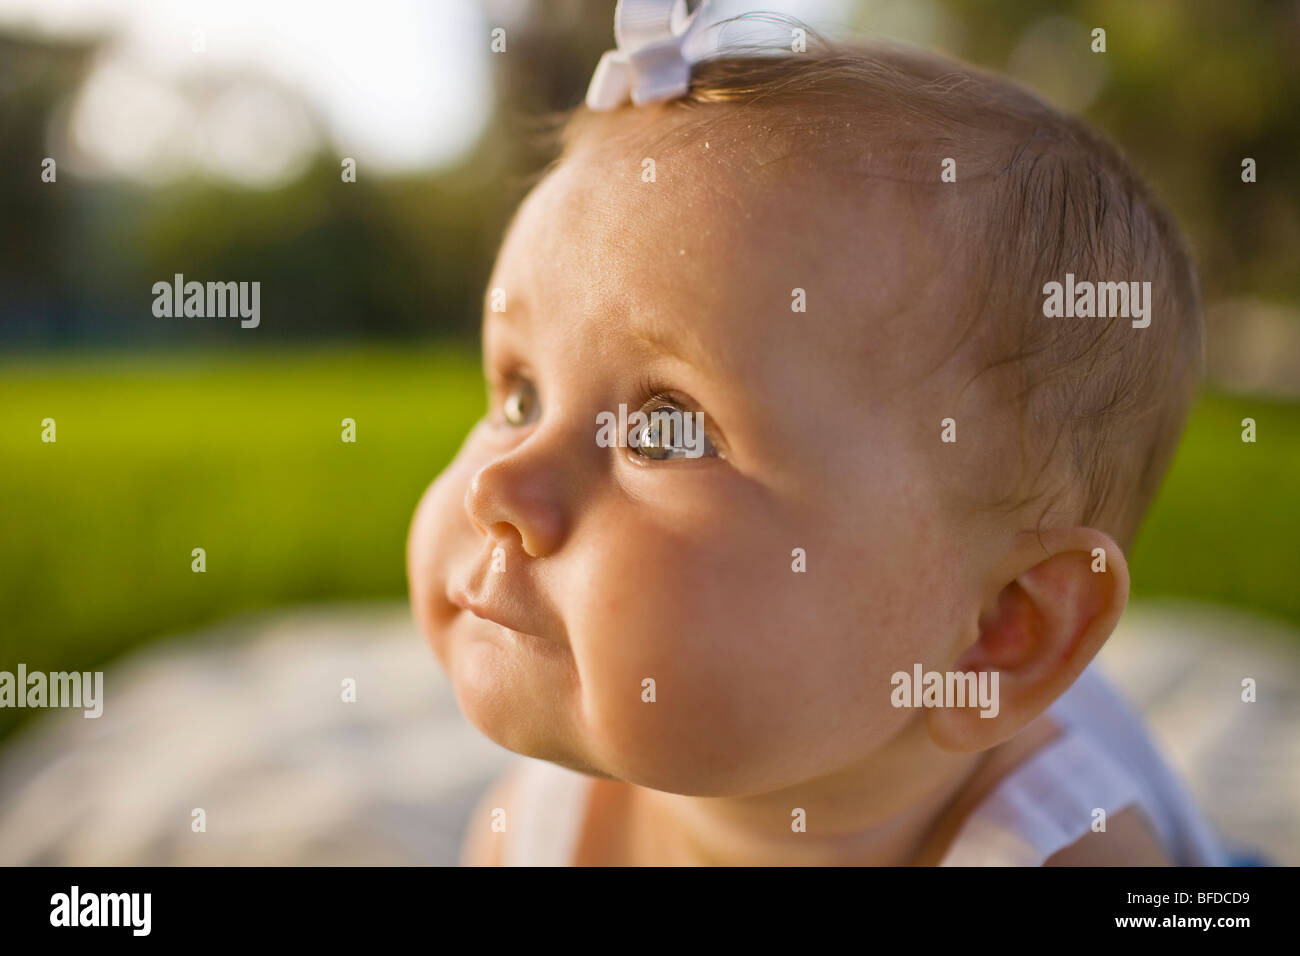 Close up view of a wide-eyed baby girl sitting on a picnic blanket outside on a sunny day in California. - Stock Image